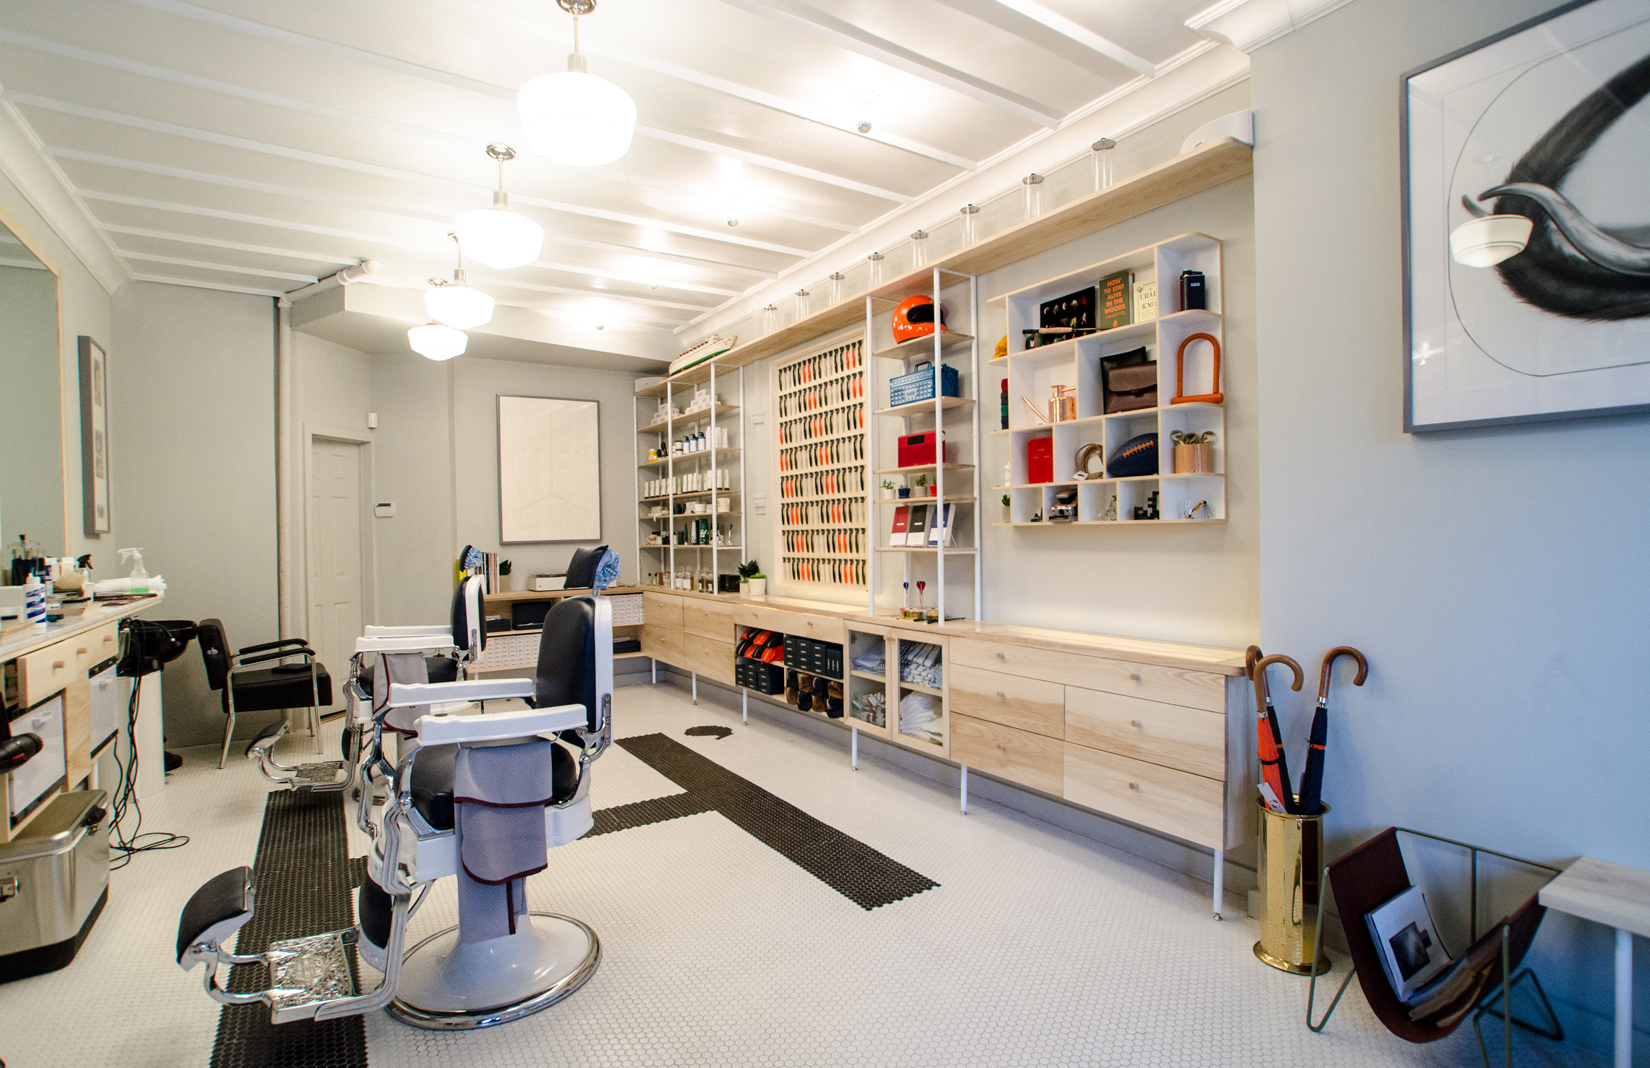 18 destinations giving the traditional barber shop and hair salon a